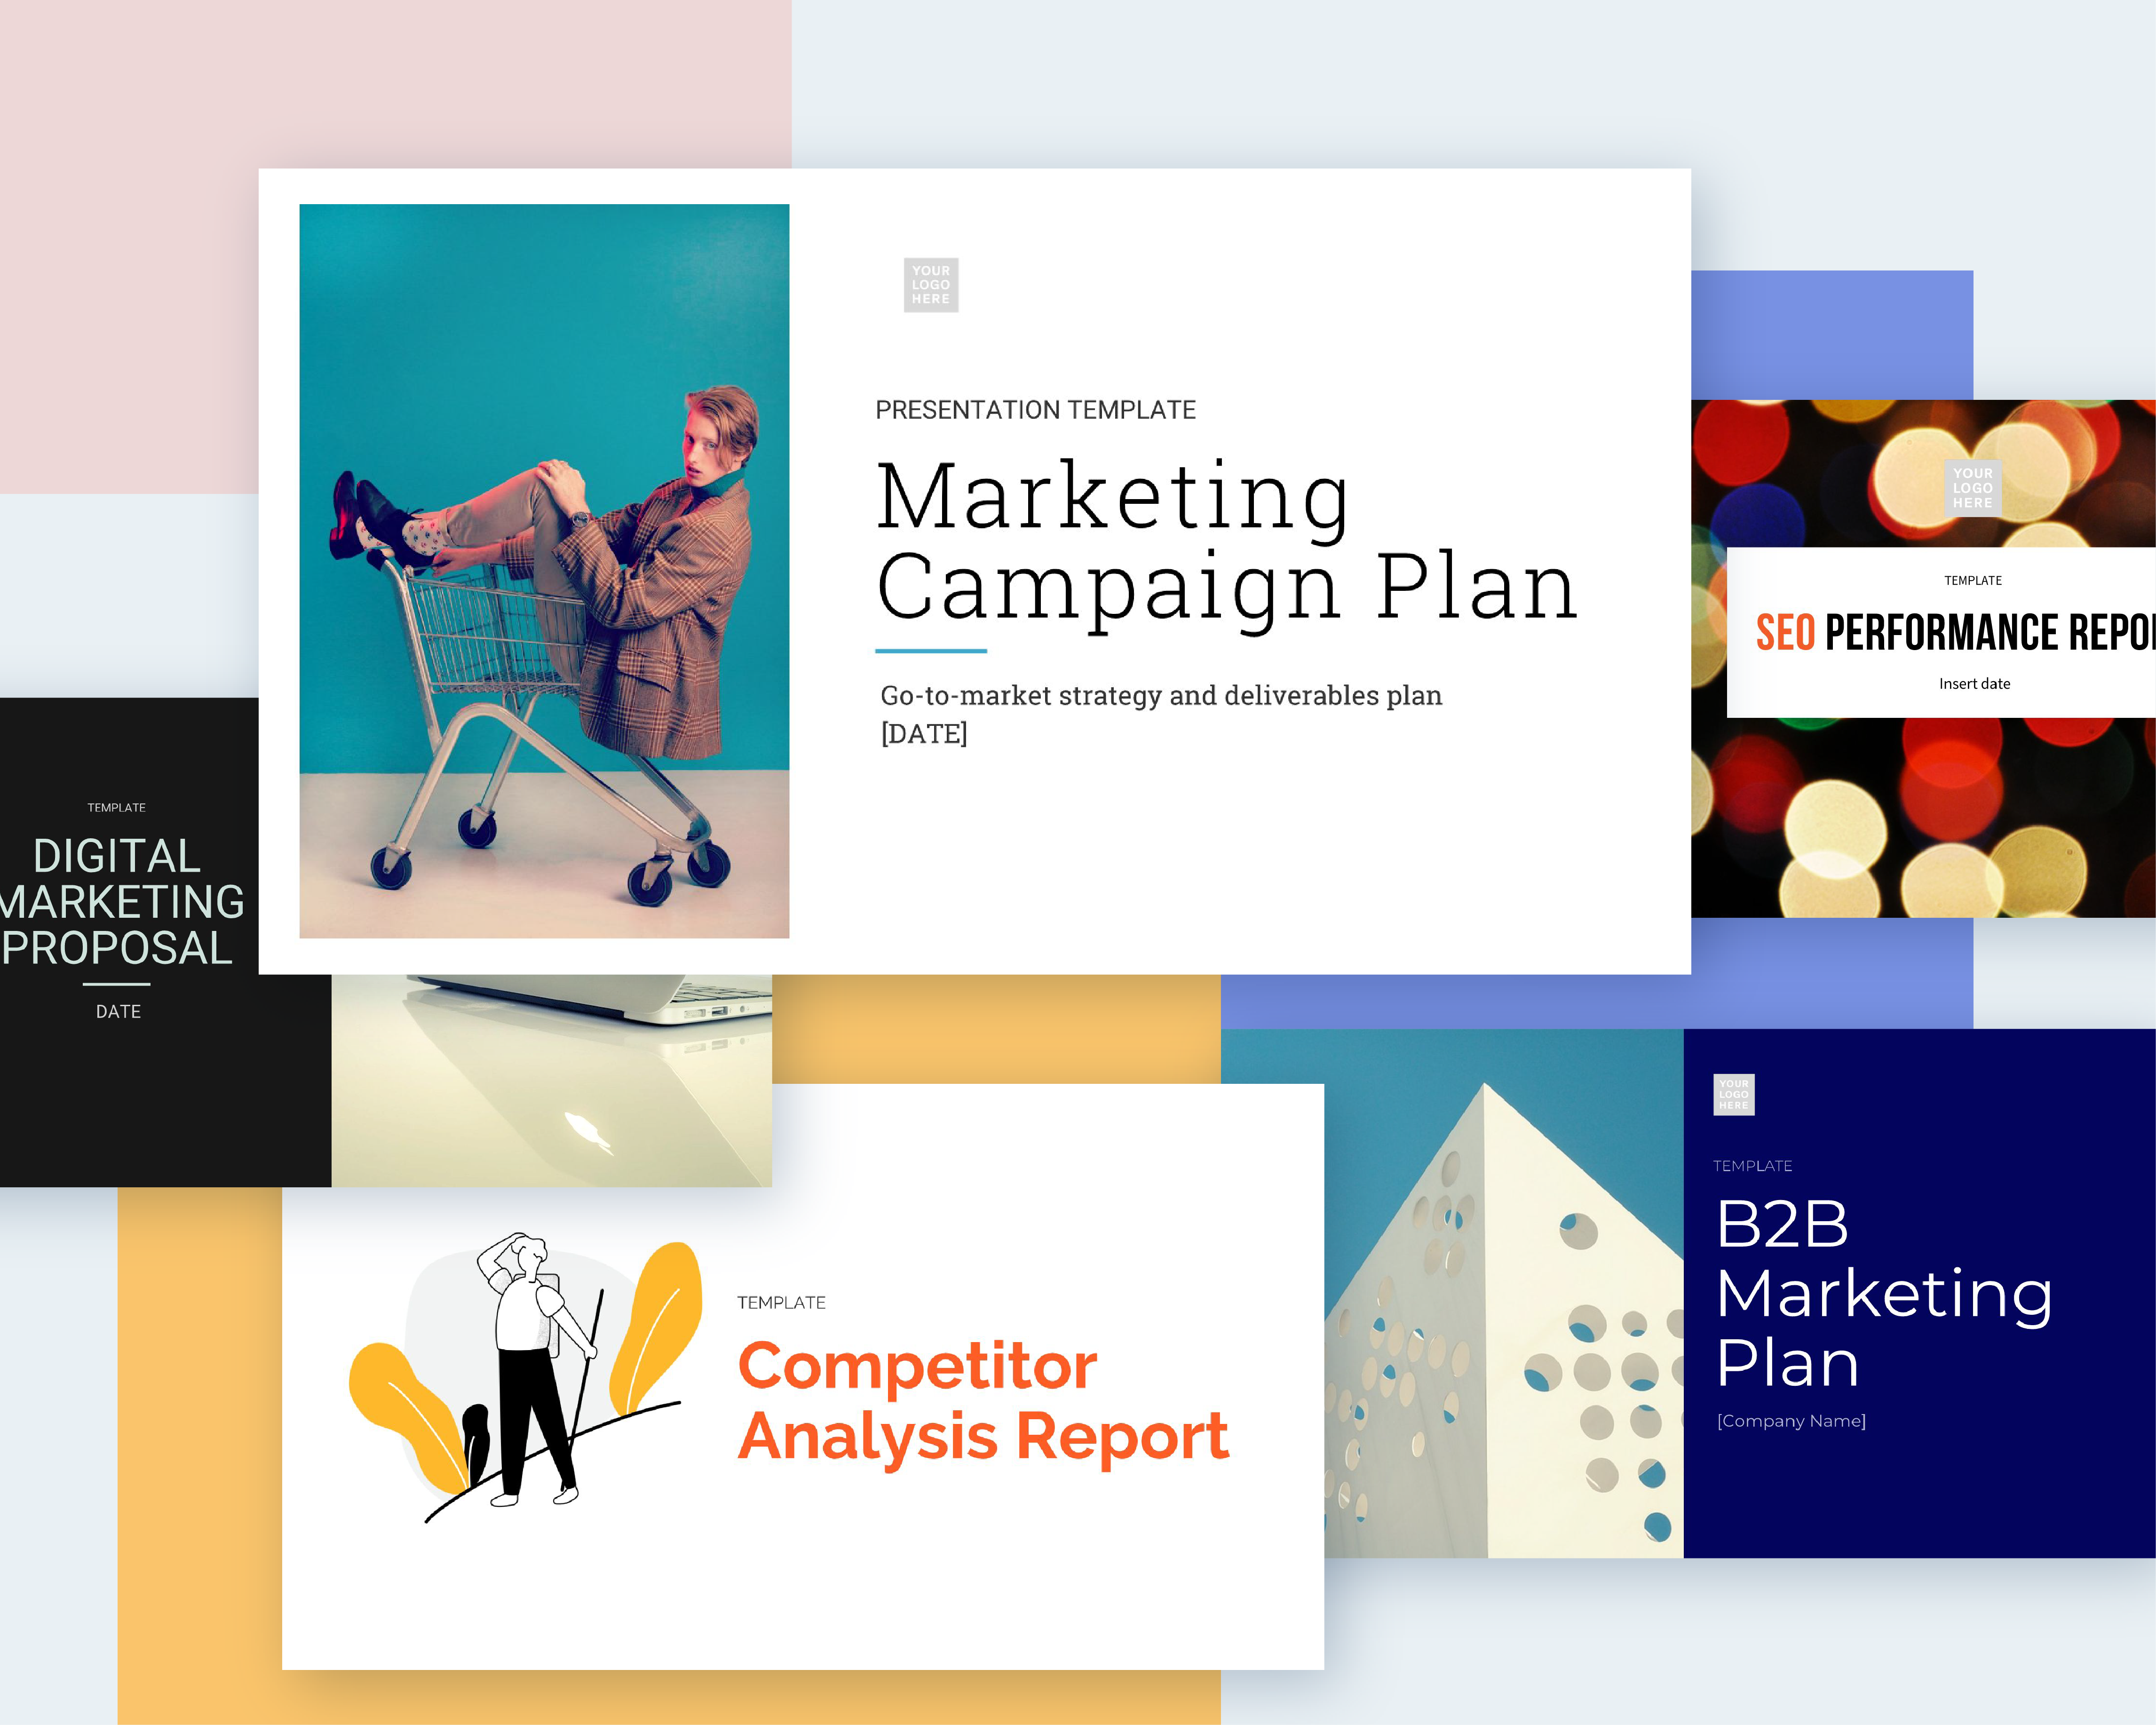 7 Presentation Templates That Every Marketer Needs